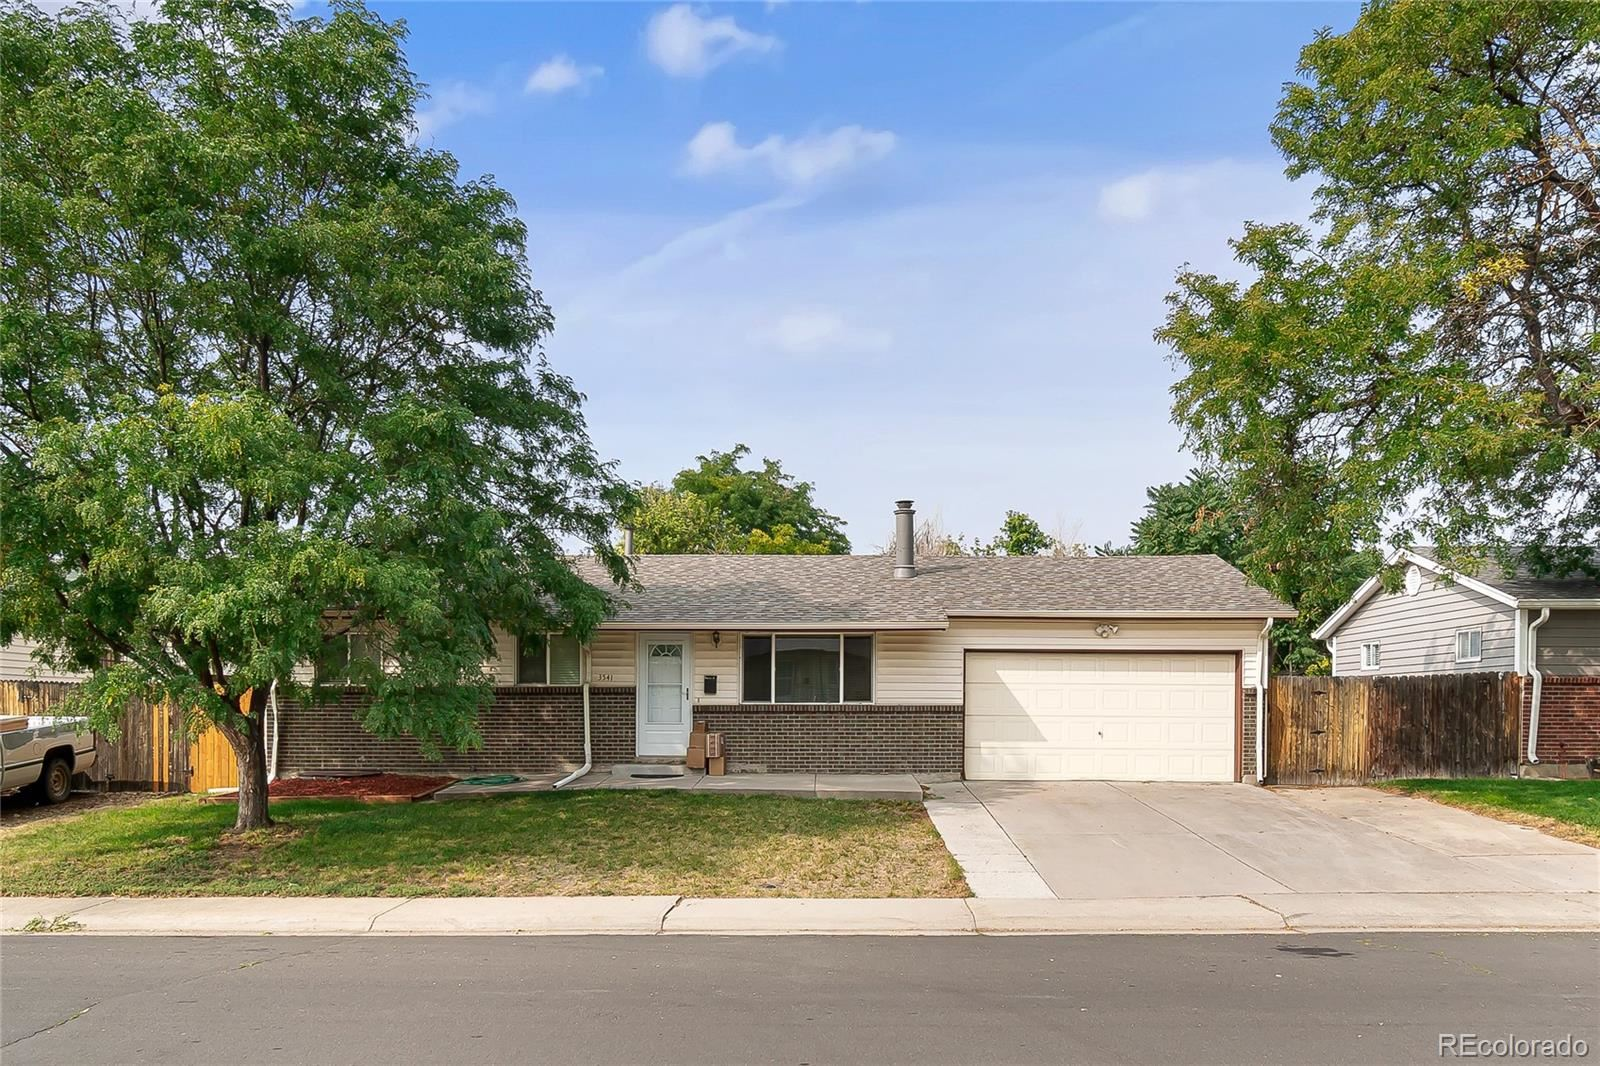 3541 W 89th Place, Westminster, CO 80031 - #: 8729951